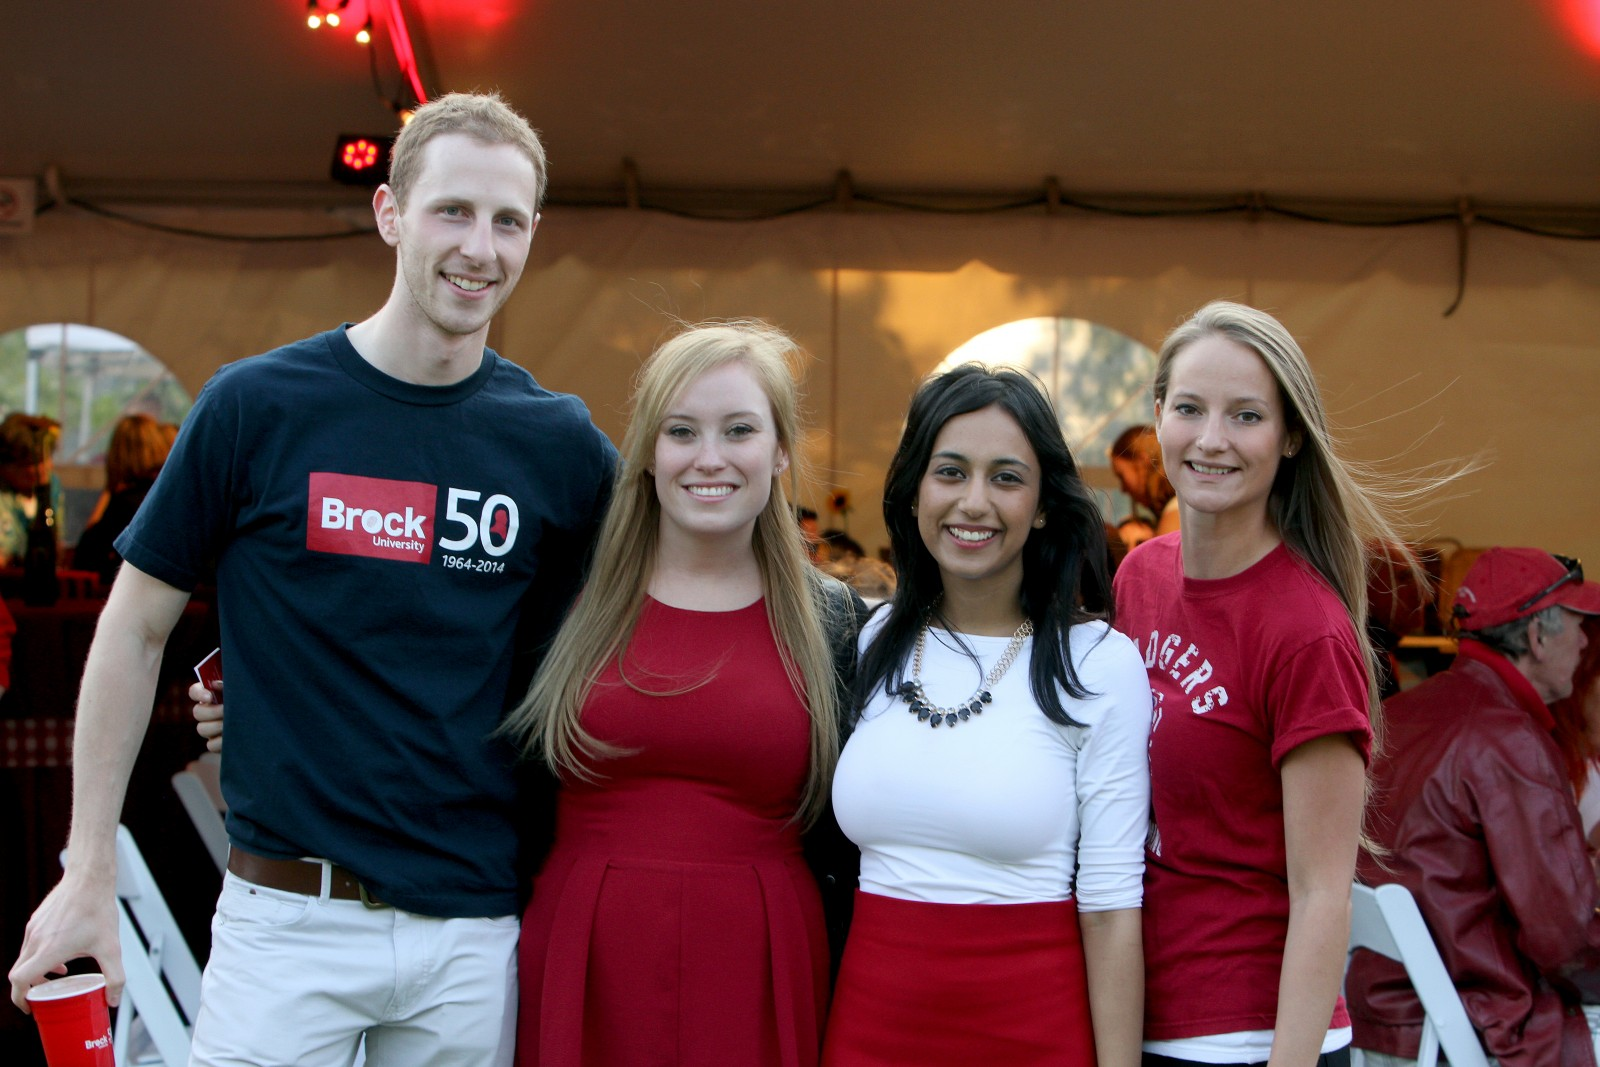 Riley Percheson, Stacey Smith, Aanchal Narula and Krista Kendell are photographed at last year's Red Dinner. This year's event takes place Saturday, Sept. 19.